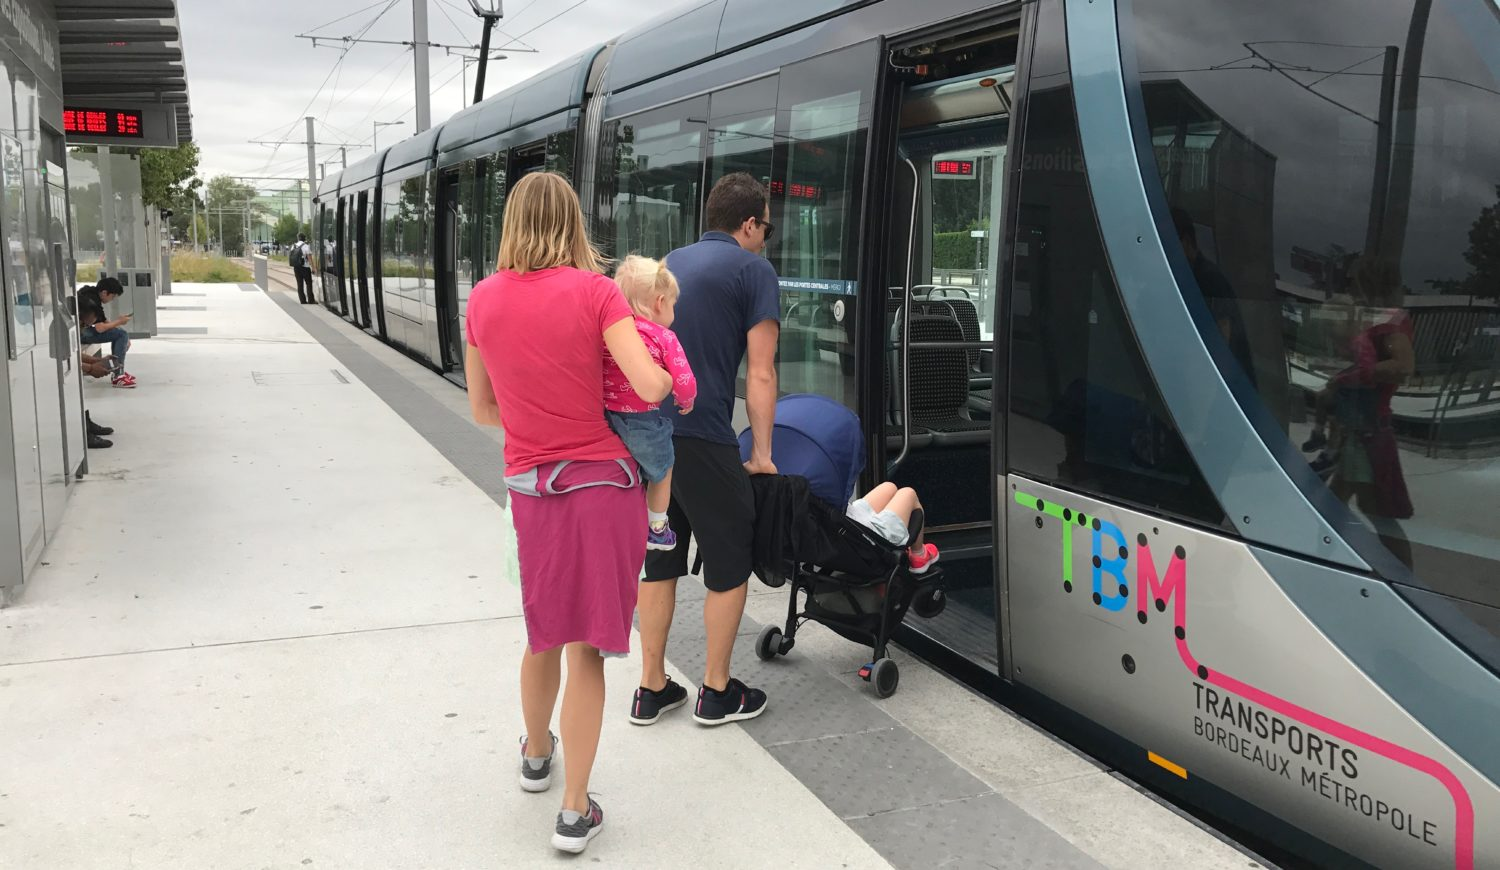 A man boarding a train with a stroller and a woman holding a small child walking behind him